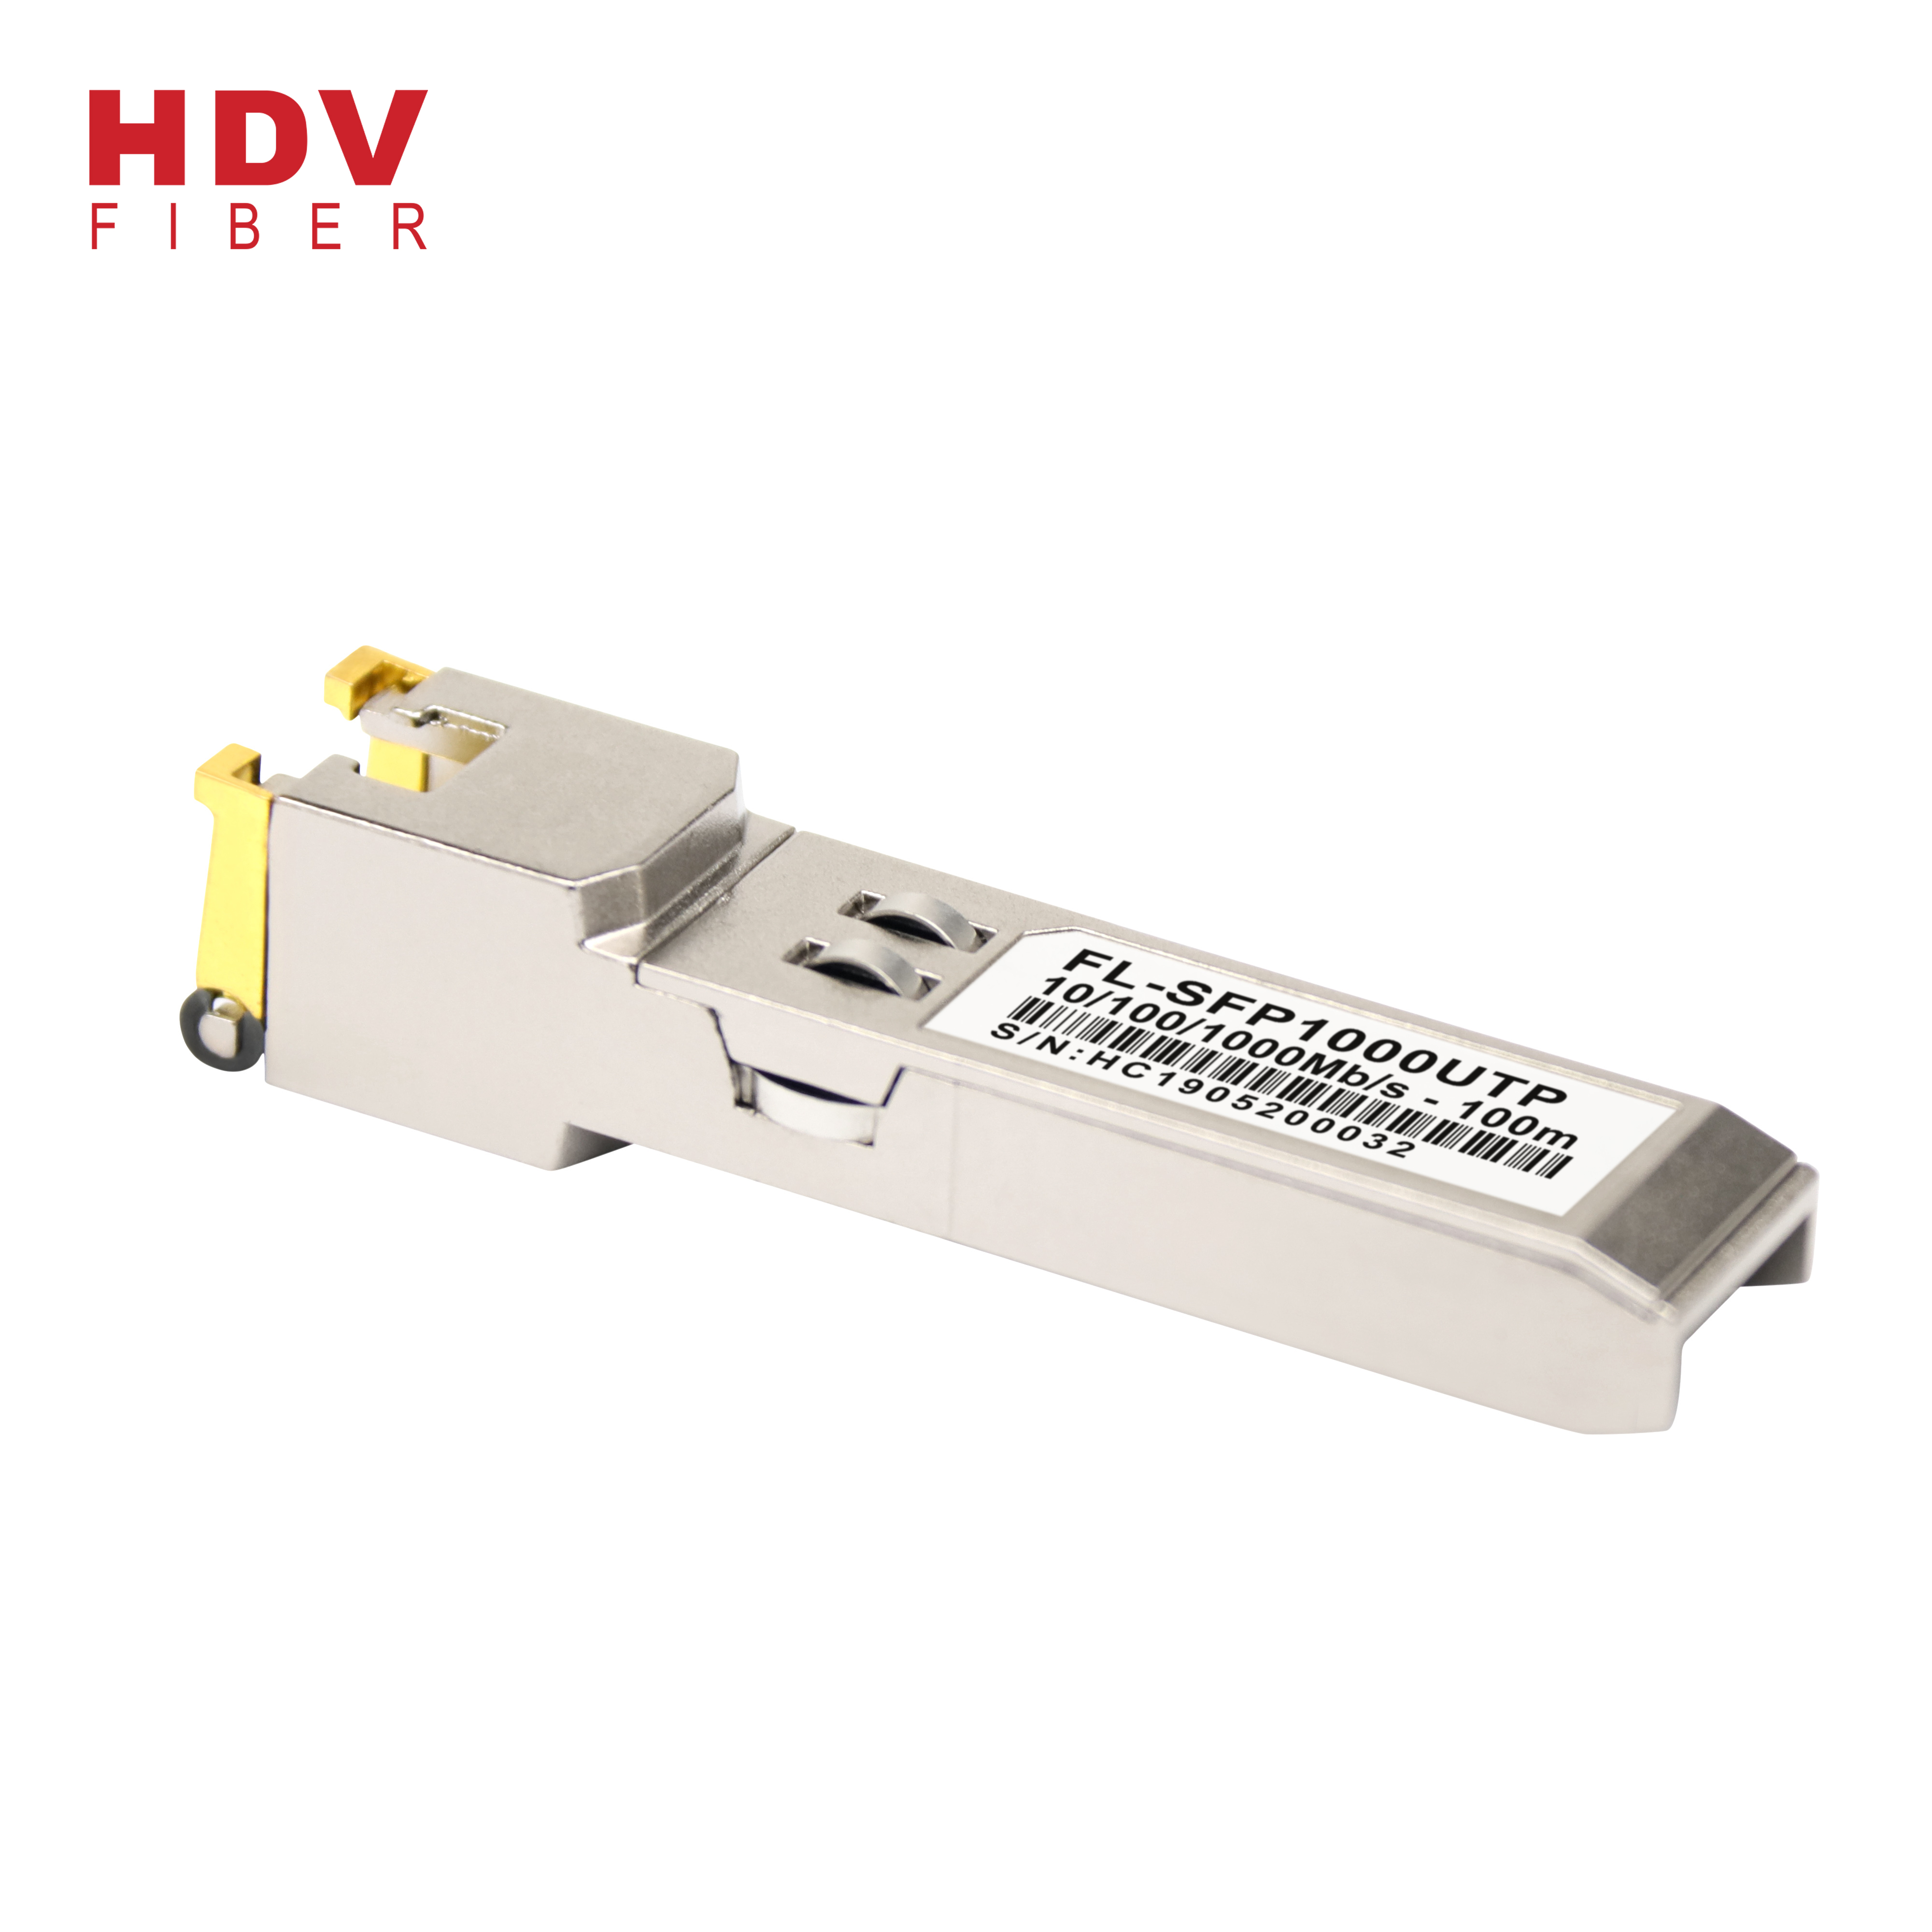 sfp module one port rj45 10/100/1000M Base-T 100m optical transceiver sfp copper Featured Image